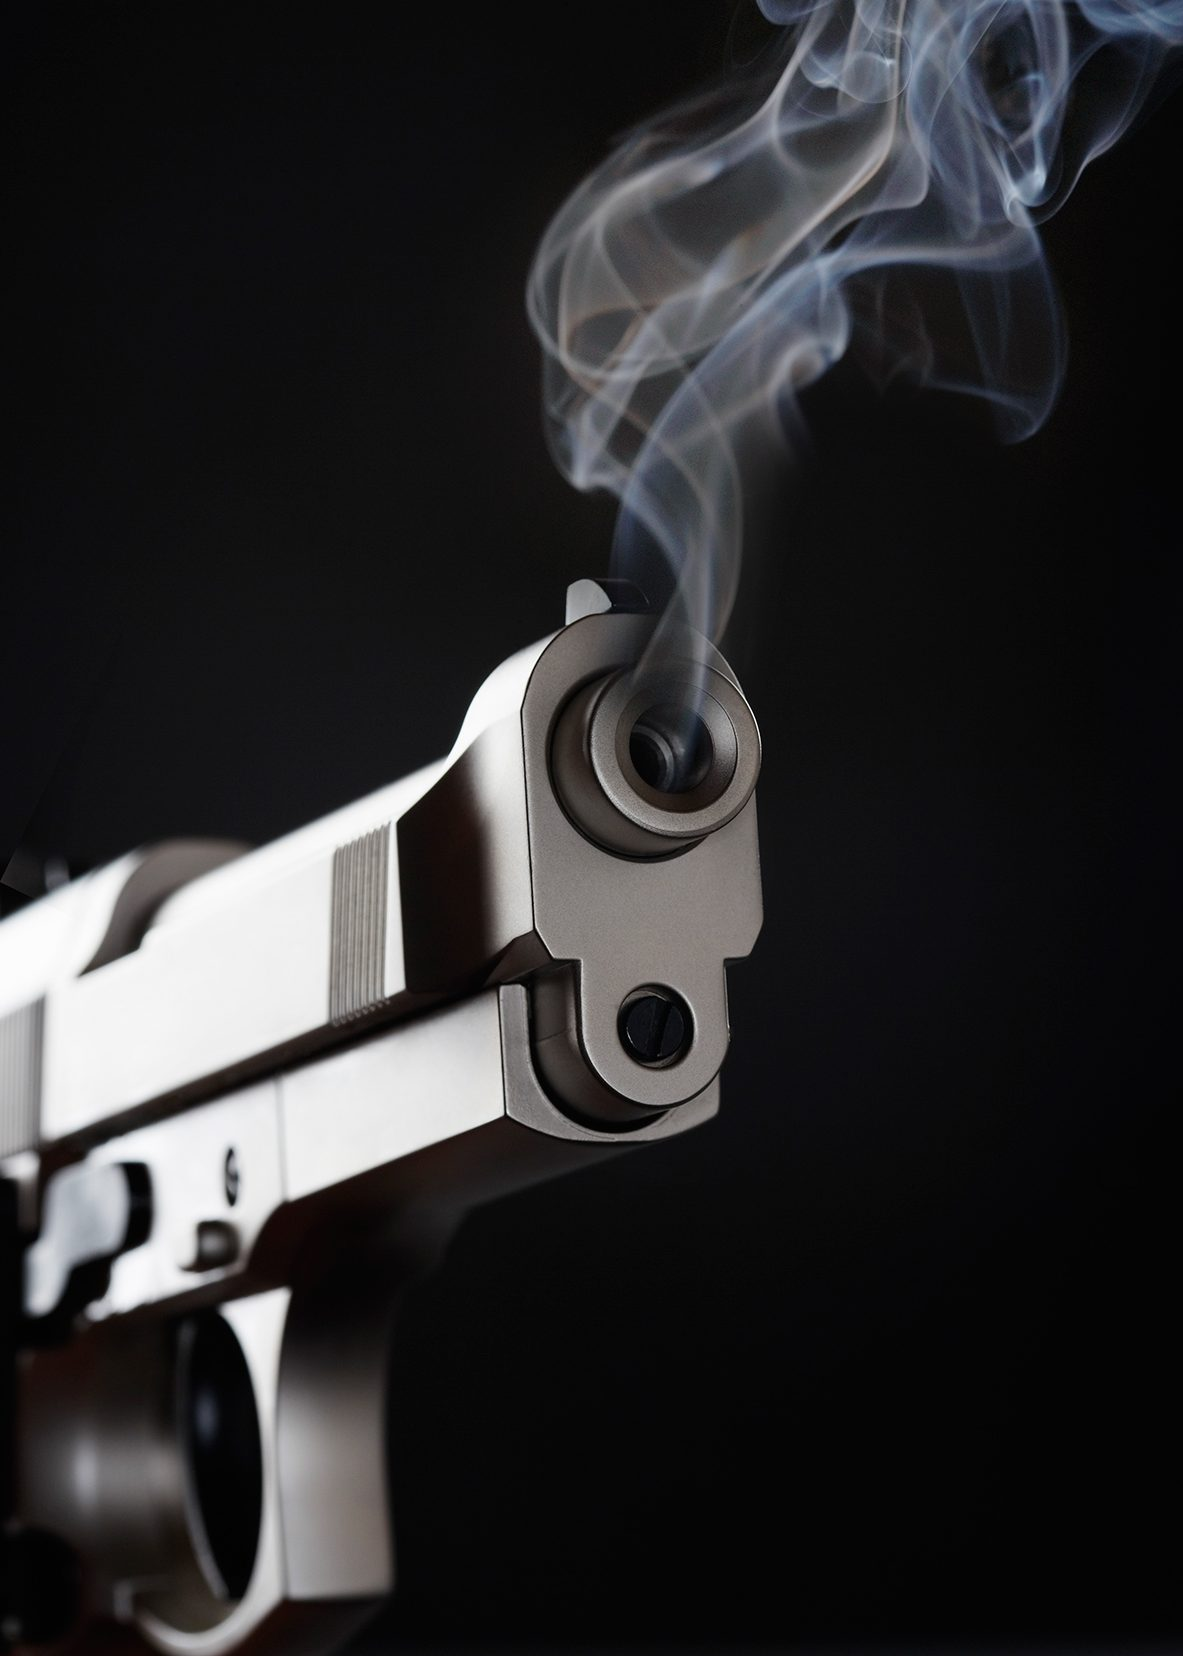 What Smoking Gun >> Why Hypothermia Could Be Helpful to Gunshot Victims